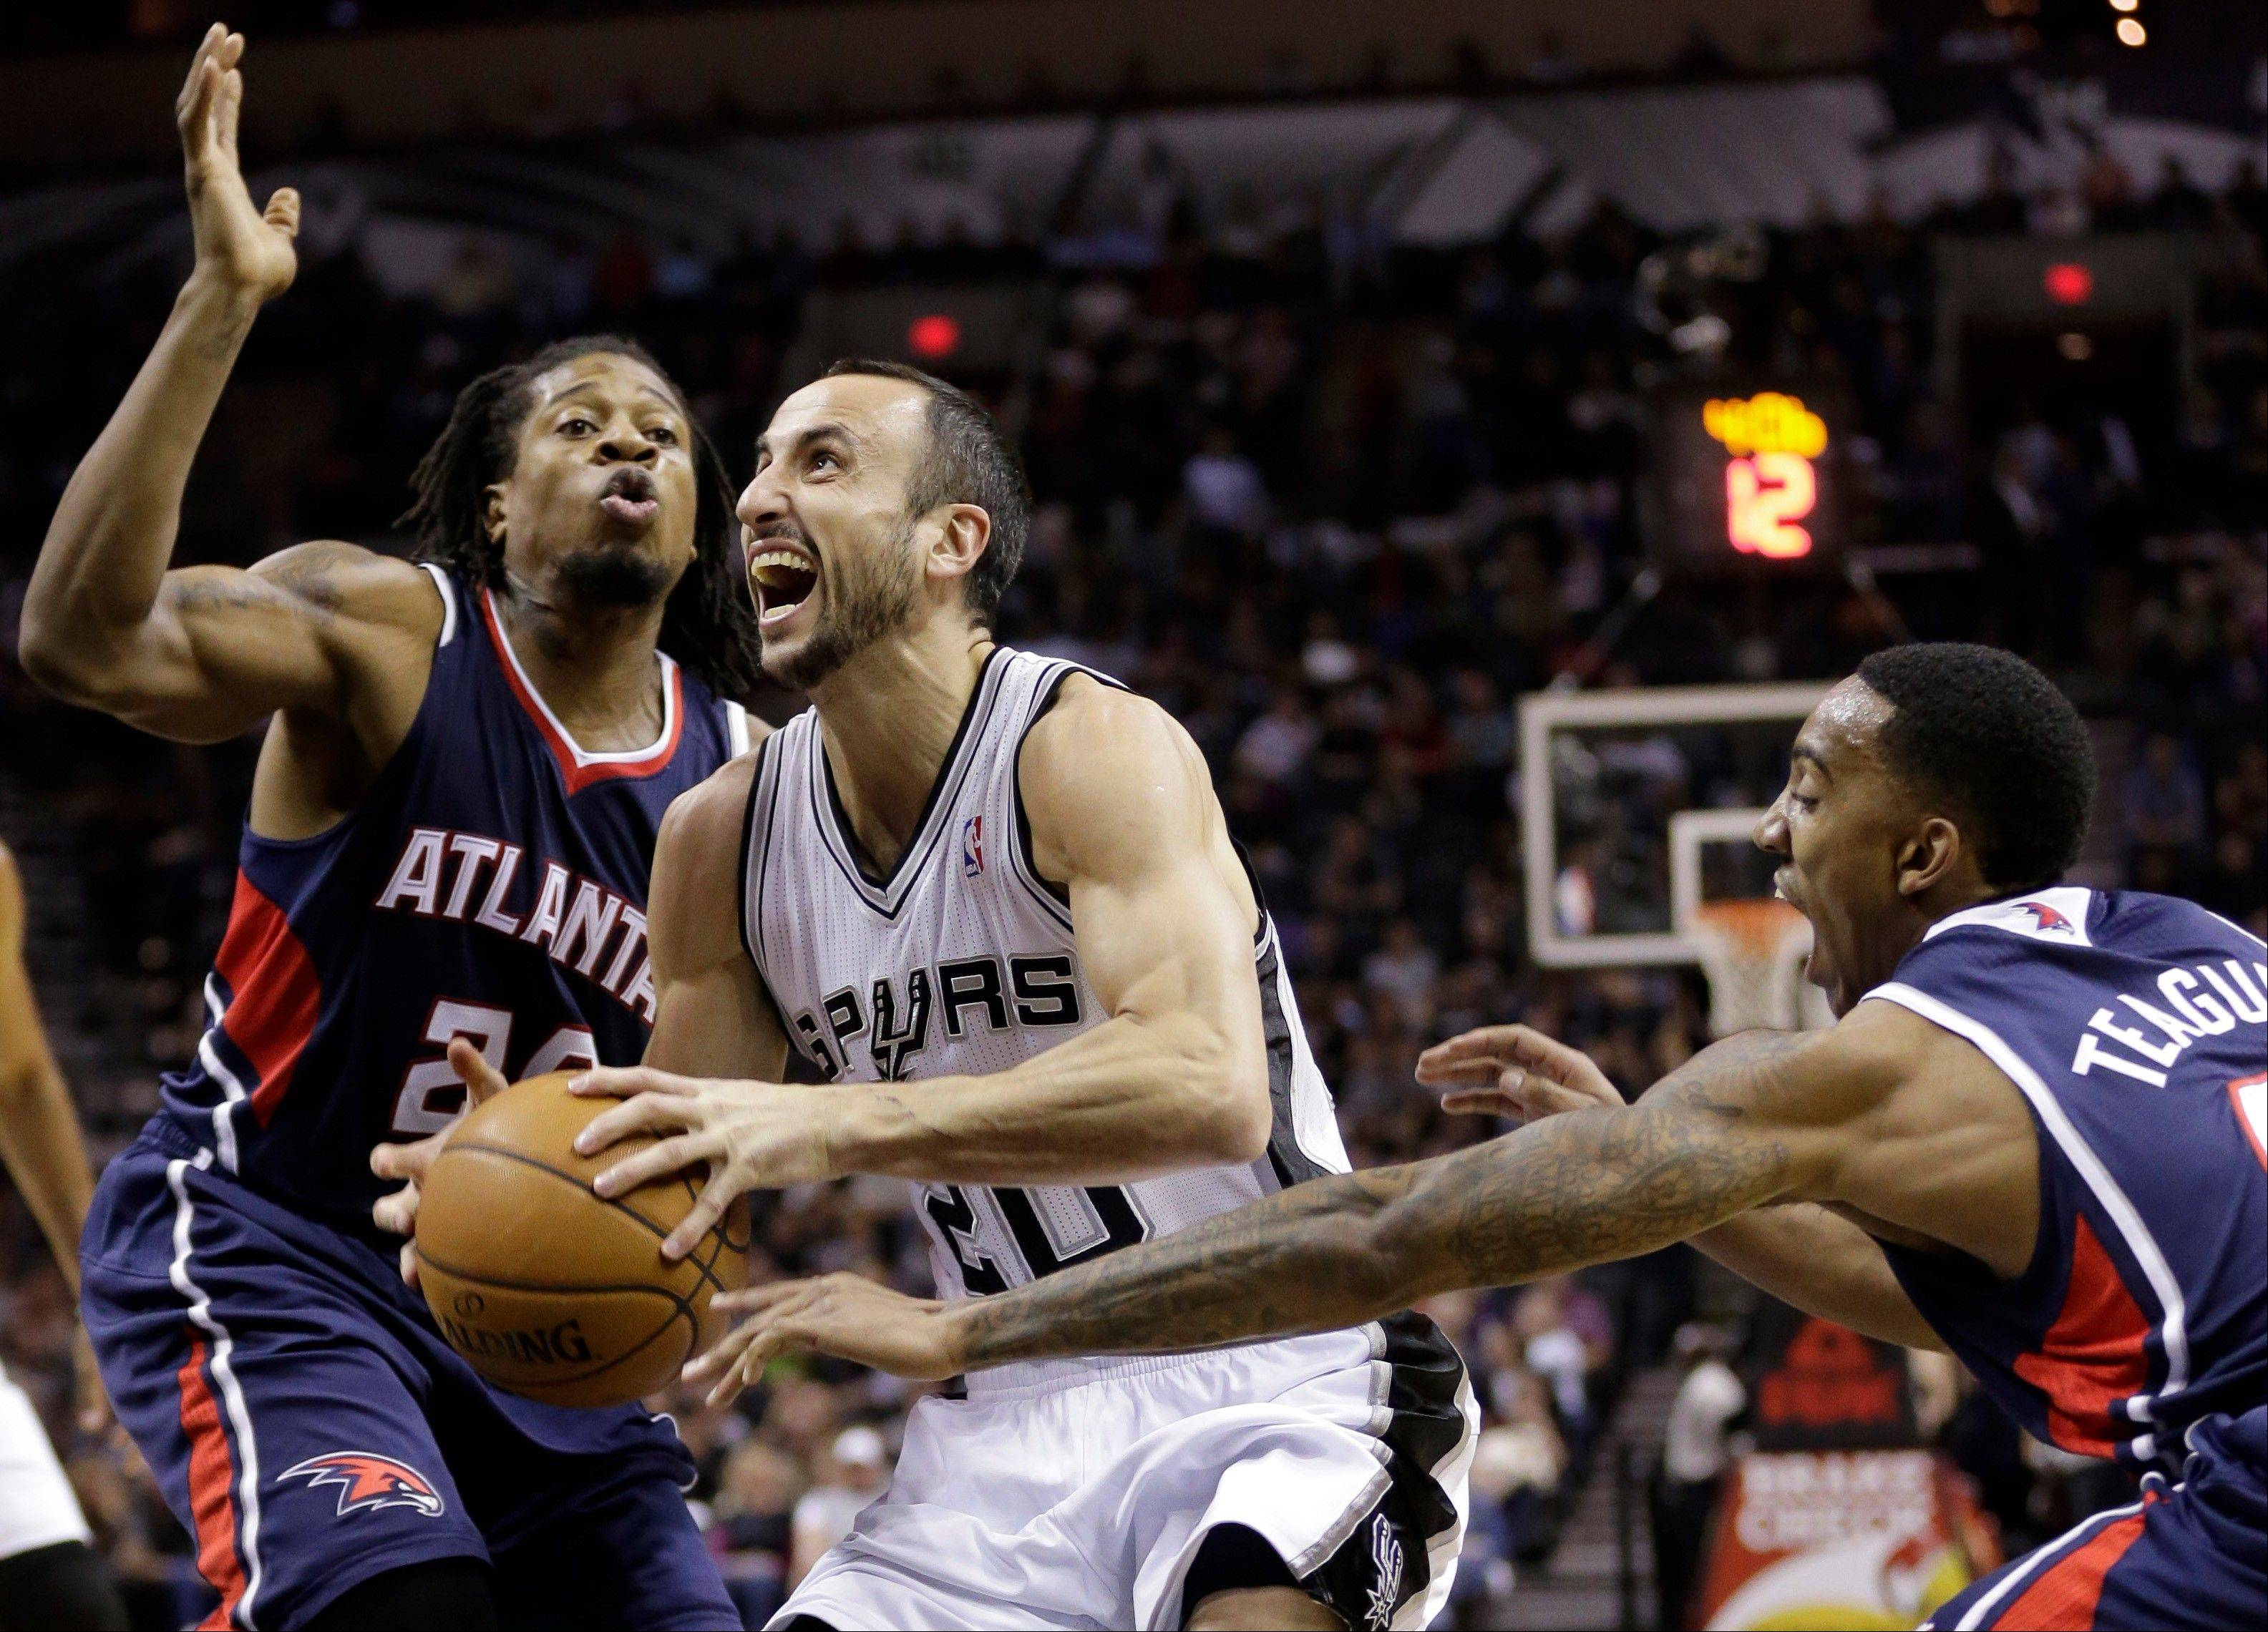 San Antonio Spurs' Manu Ginobili, center, of Argentina, is pressured by Atlanta Hawks' Cartier Martin, left, and Jeff Teague, right, as he drives to the basket during the first half of an NBA basketball game Monday in San Antonio.